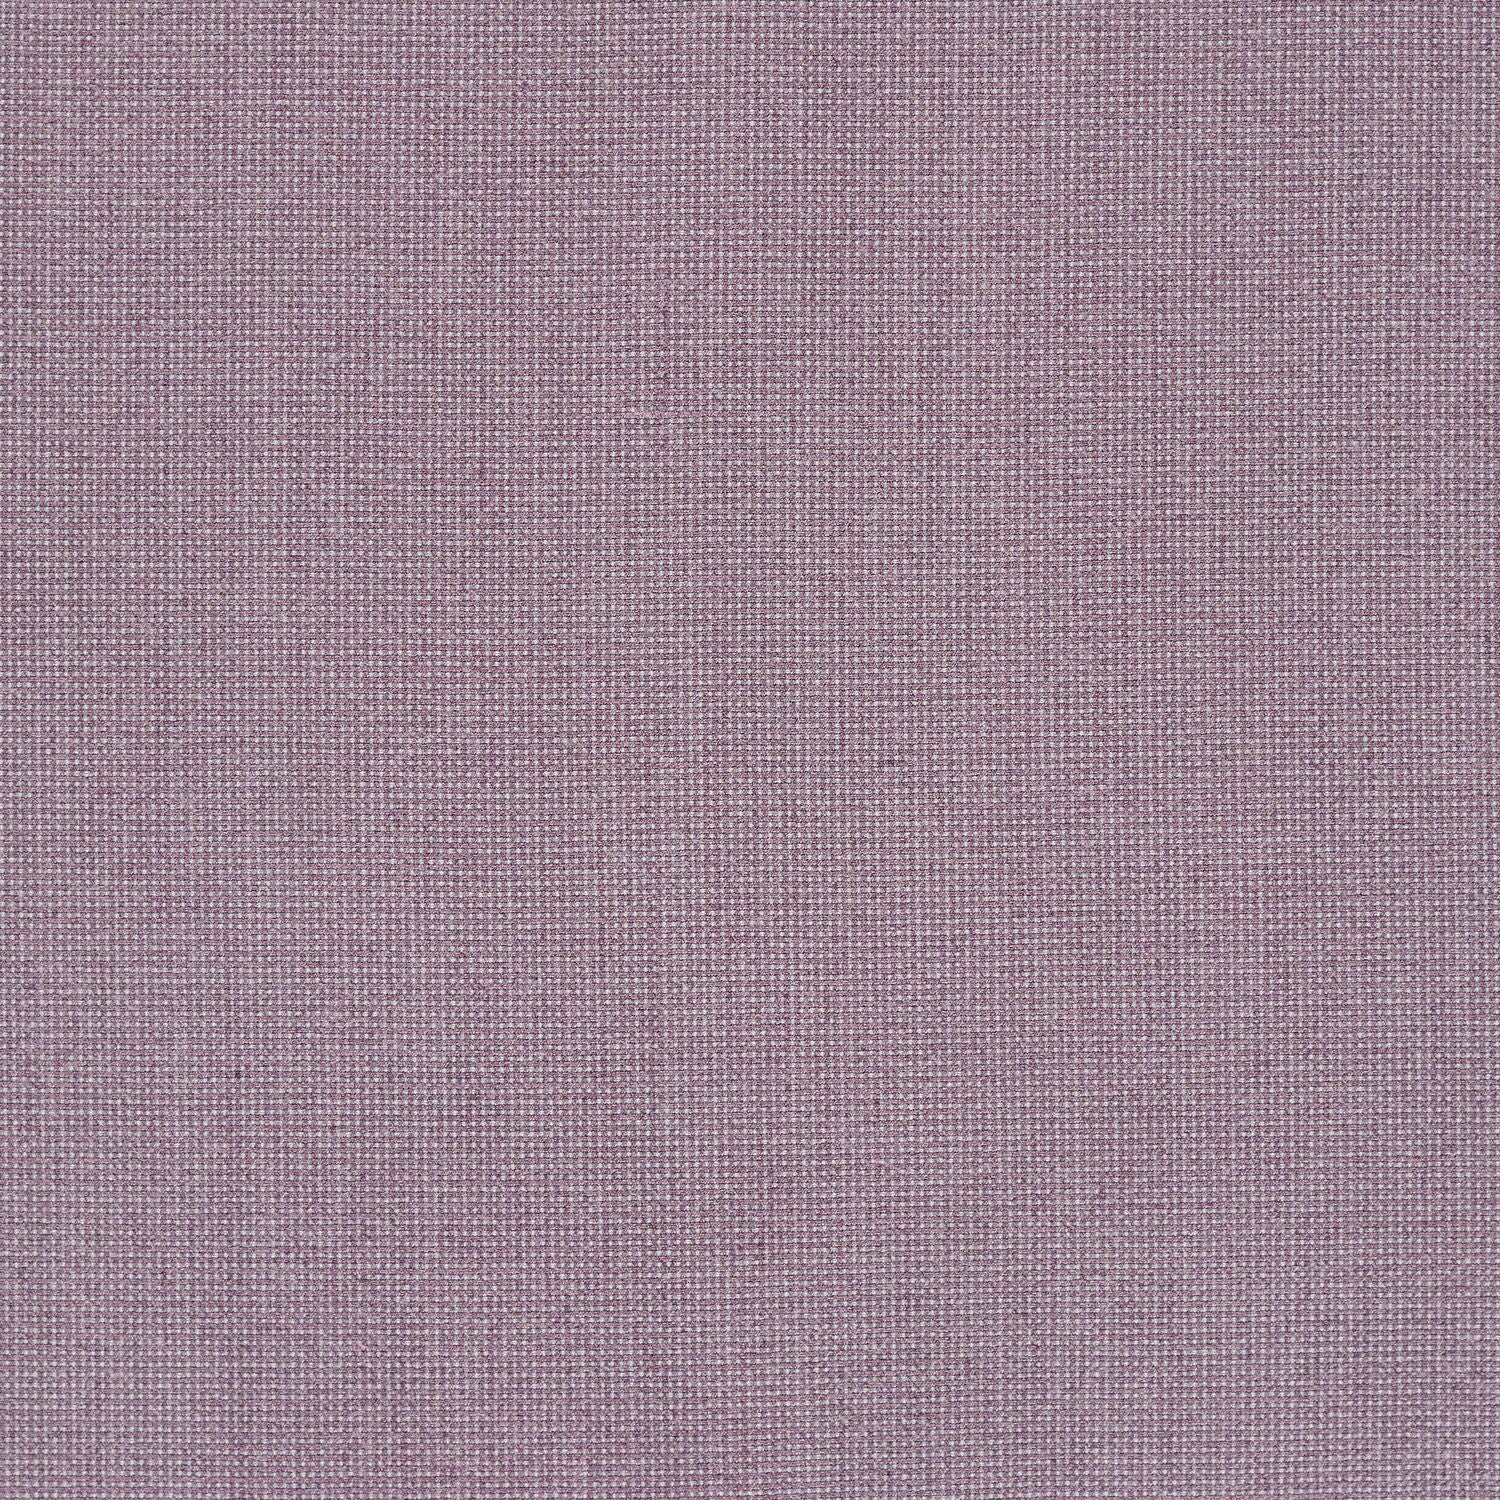 Elastic Wool - Lovelace - 4067 - 10